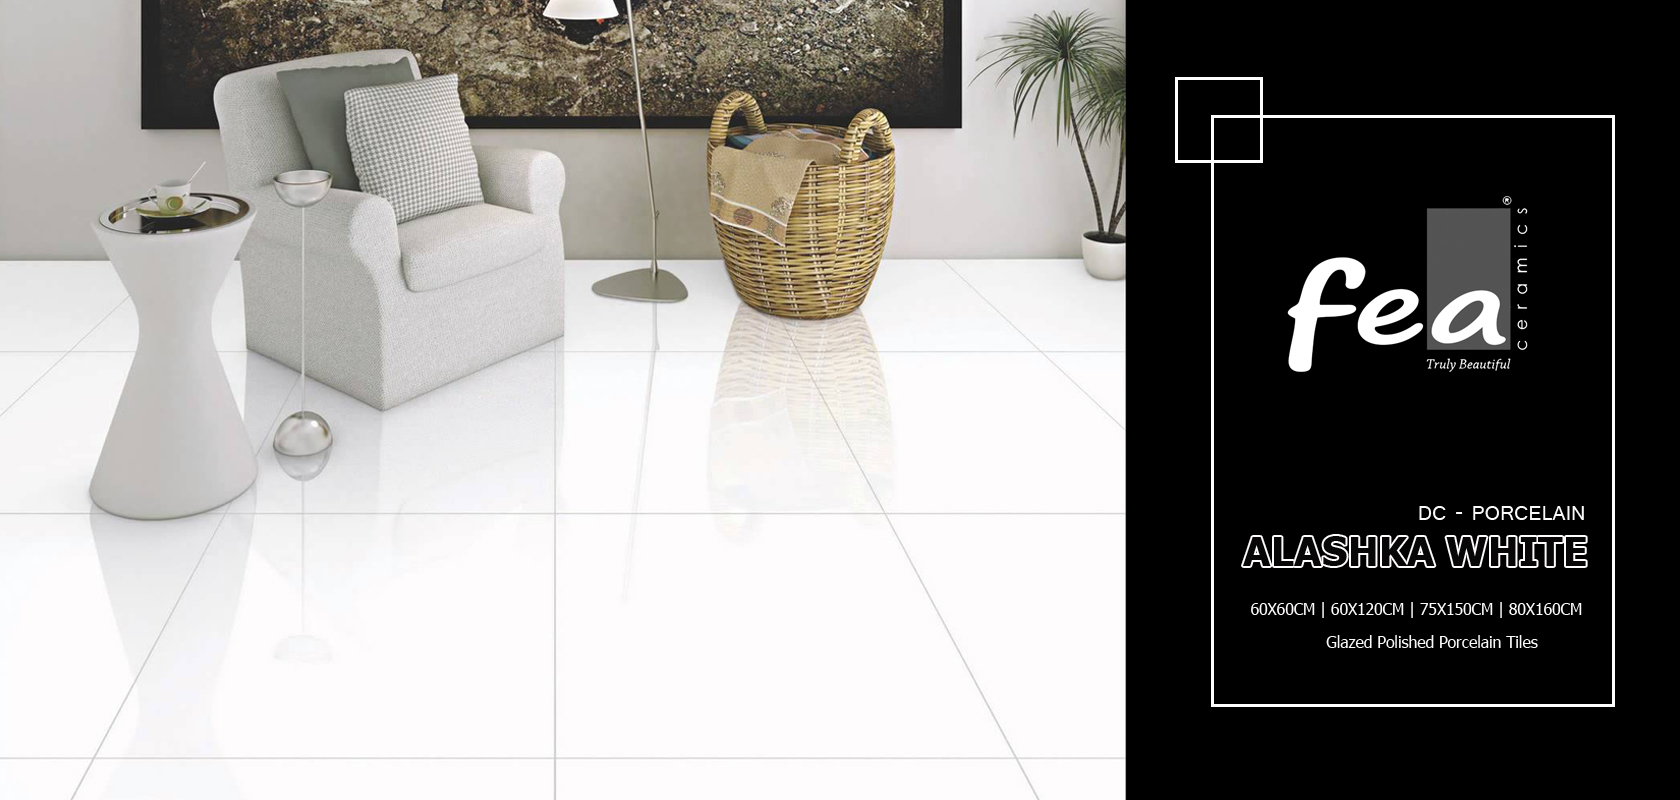 Alaska White Polished Porcelain Tiles Porcelain Tilesfloor Tiles